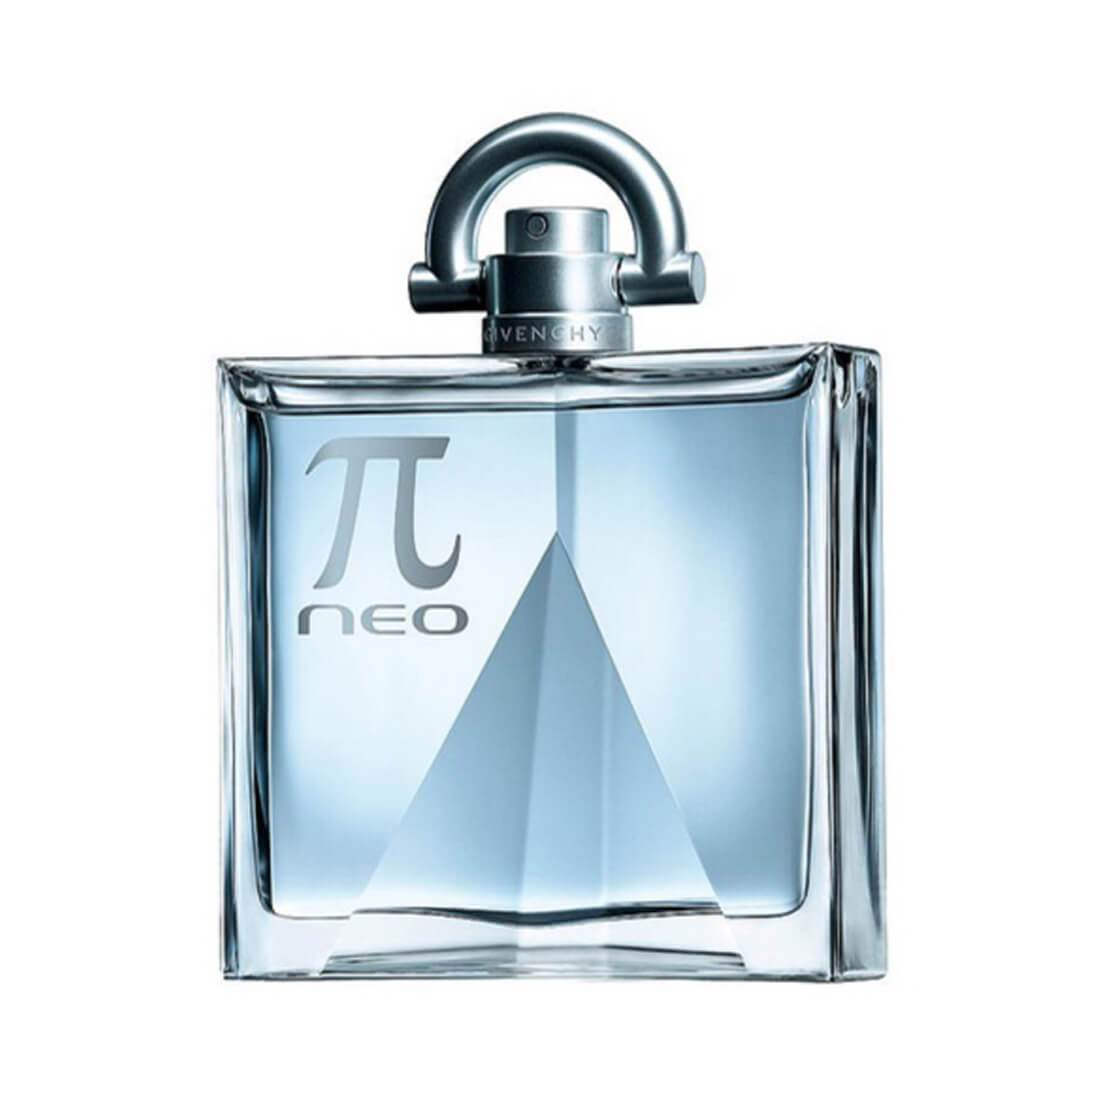 Givenchy Pi Neo EDT Perfume For Men - 100ml